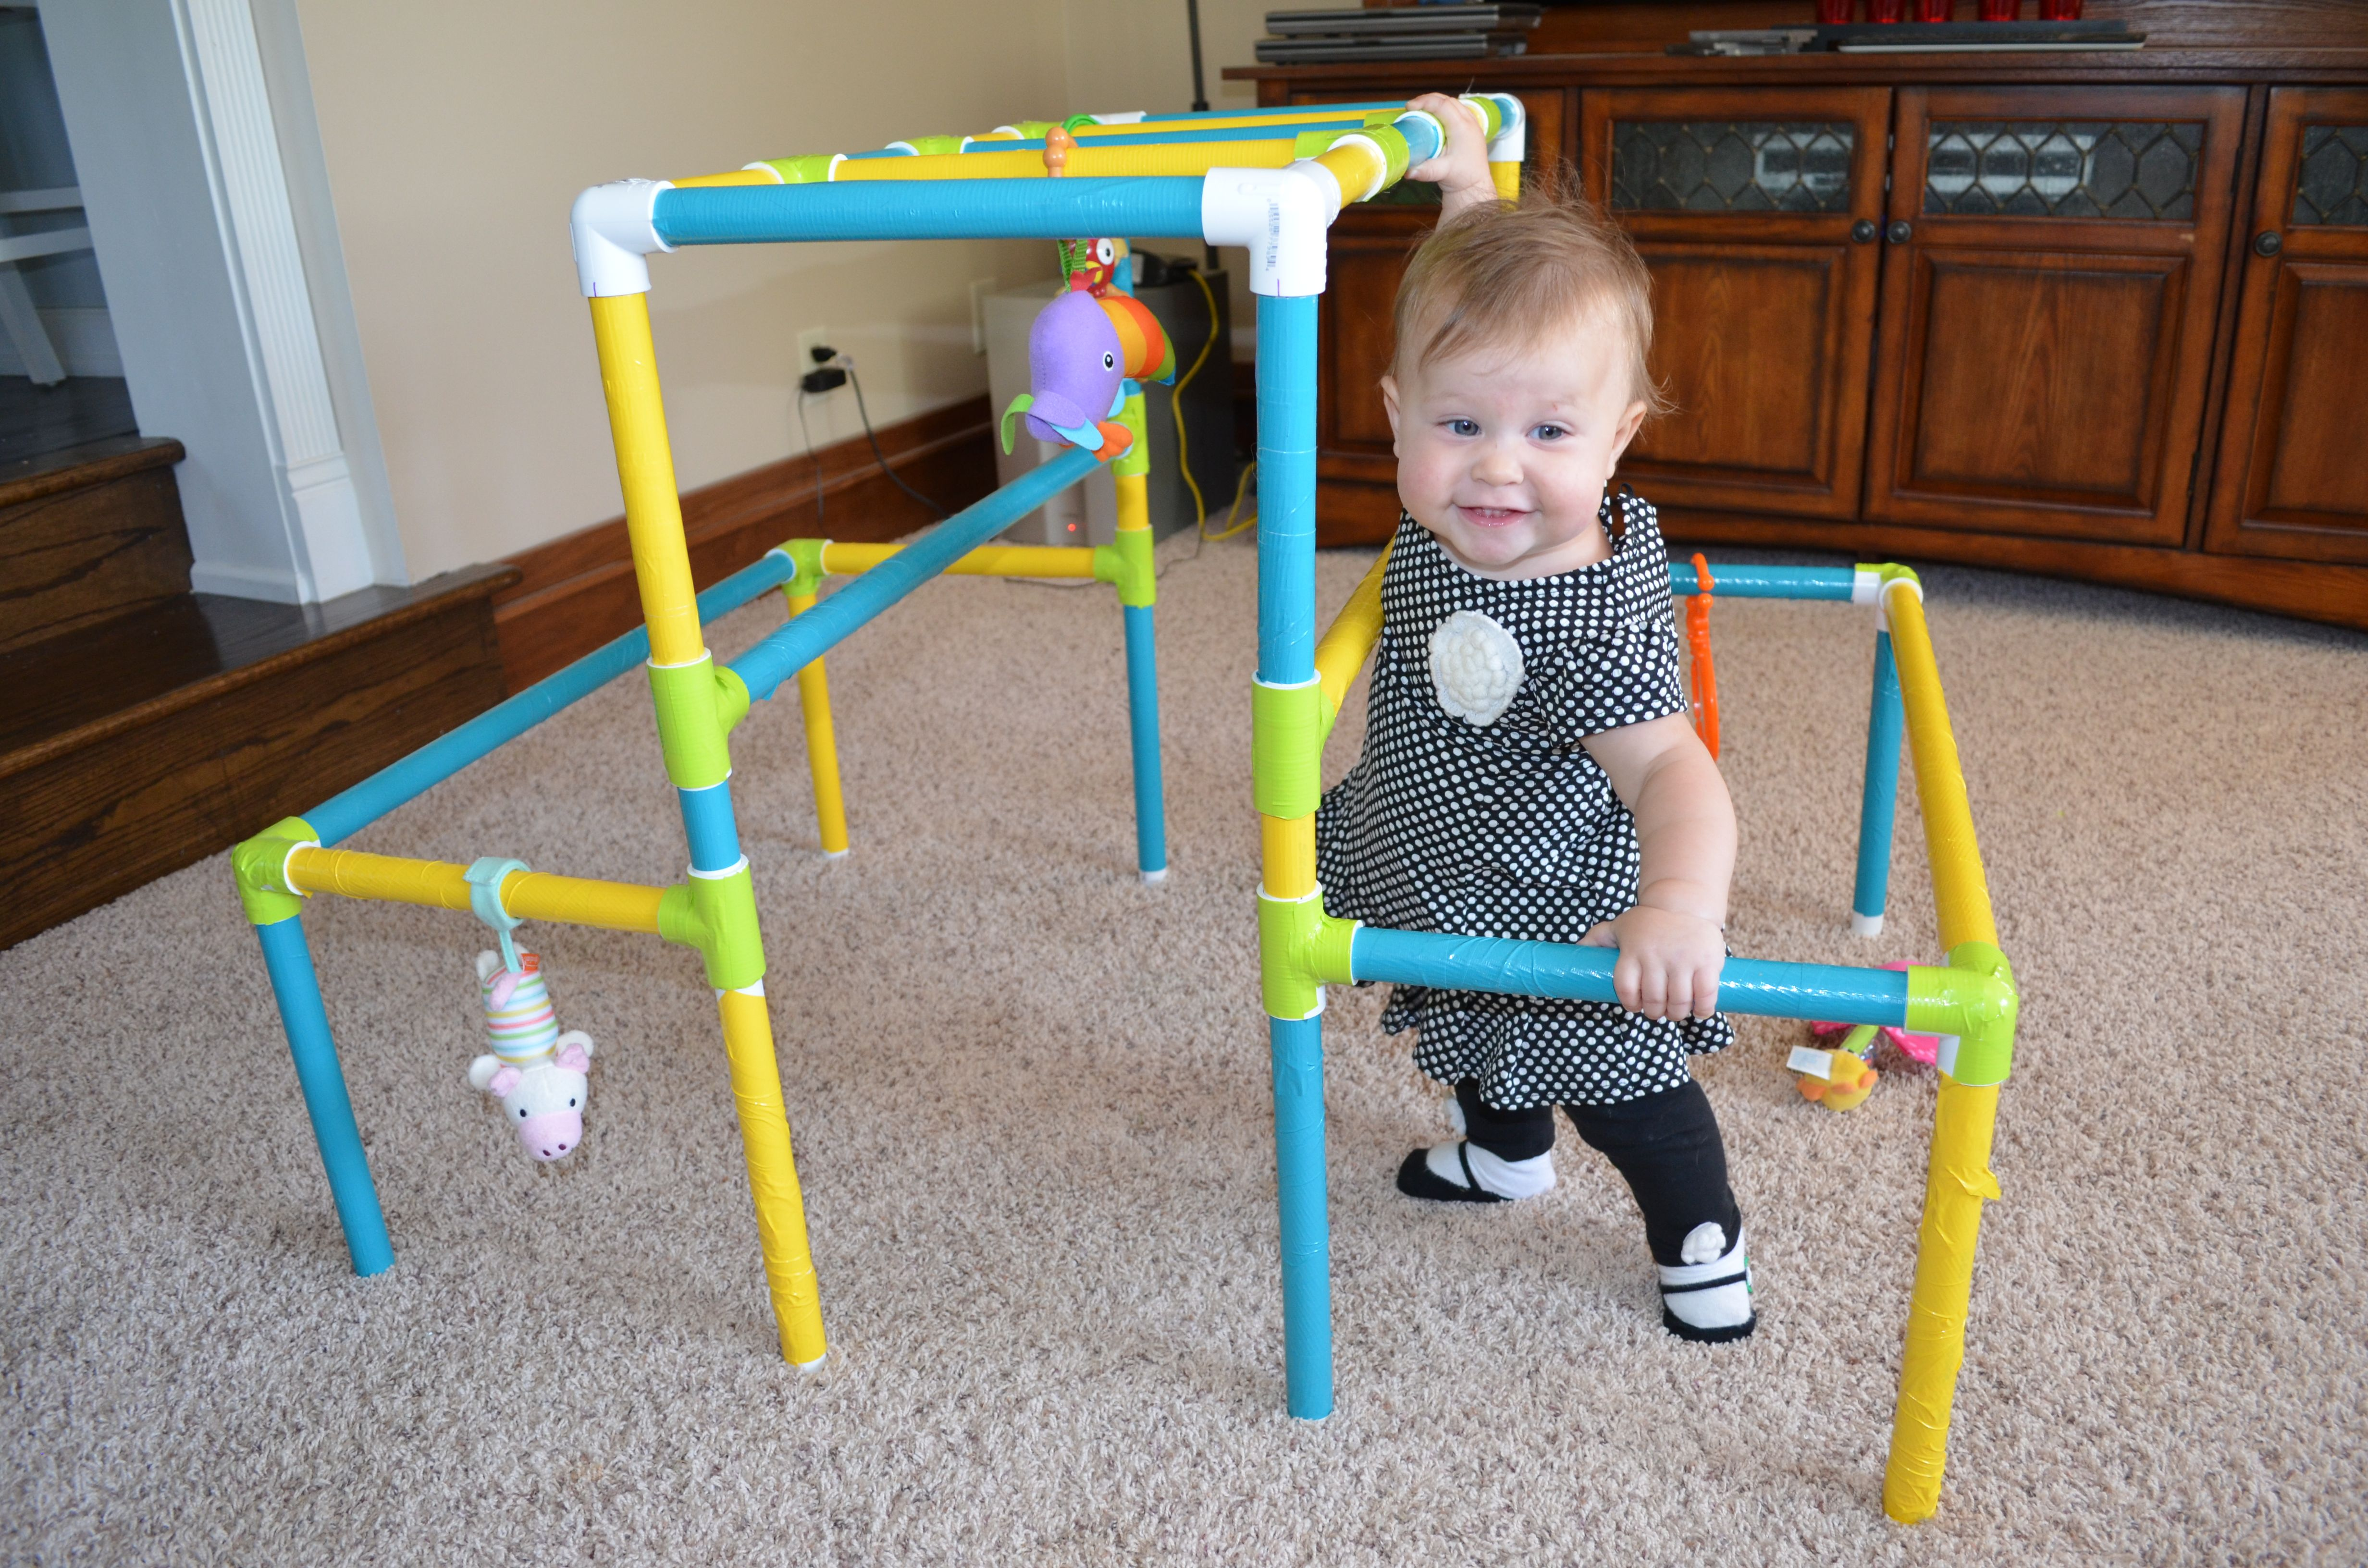 My little one Evie on her homemade DIY indoor jungle gym